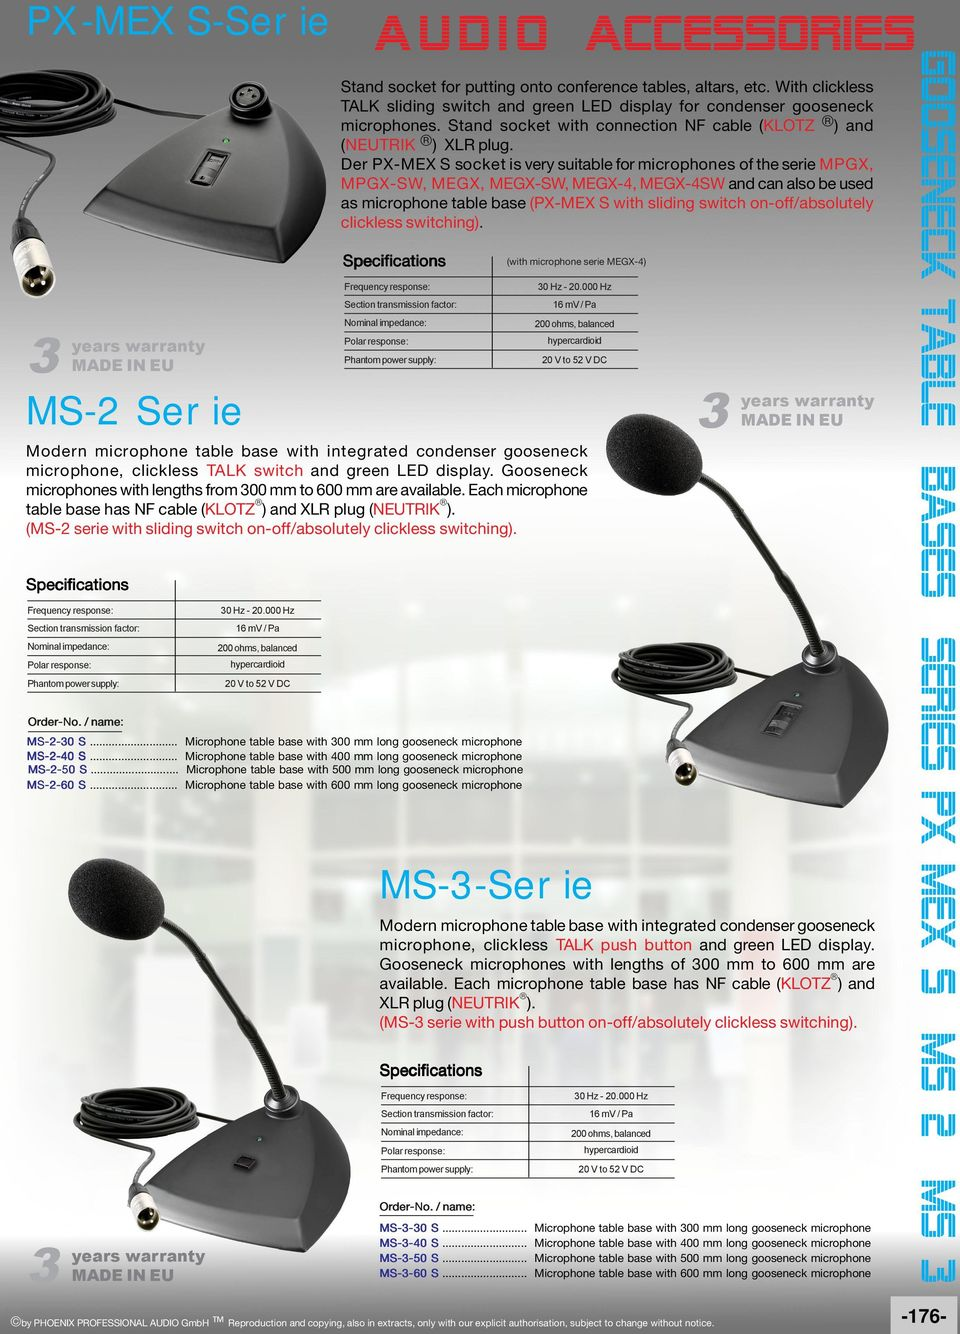 Der PX-MEX S socket is very suitable for microphones of the serie MPGX, MPGX-SW, MEGX, MEGX-SW, MEGX-4, MEGX-4SW and can also be used as microphone table base (PX-MEX S with sliding switch